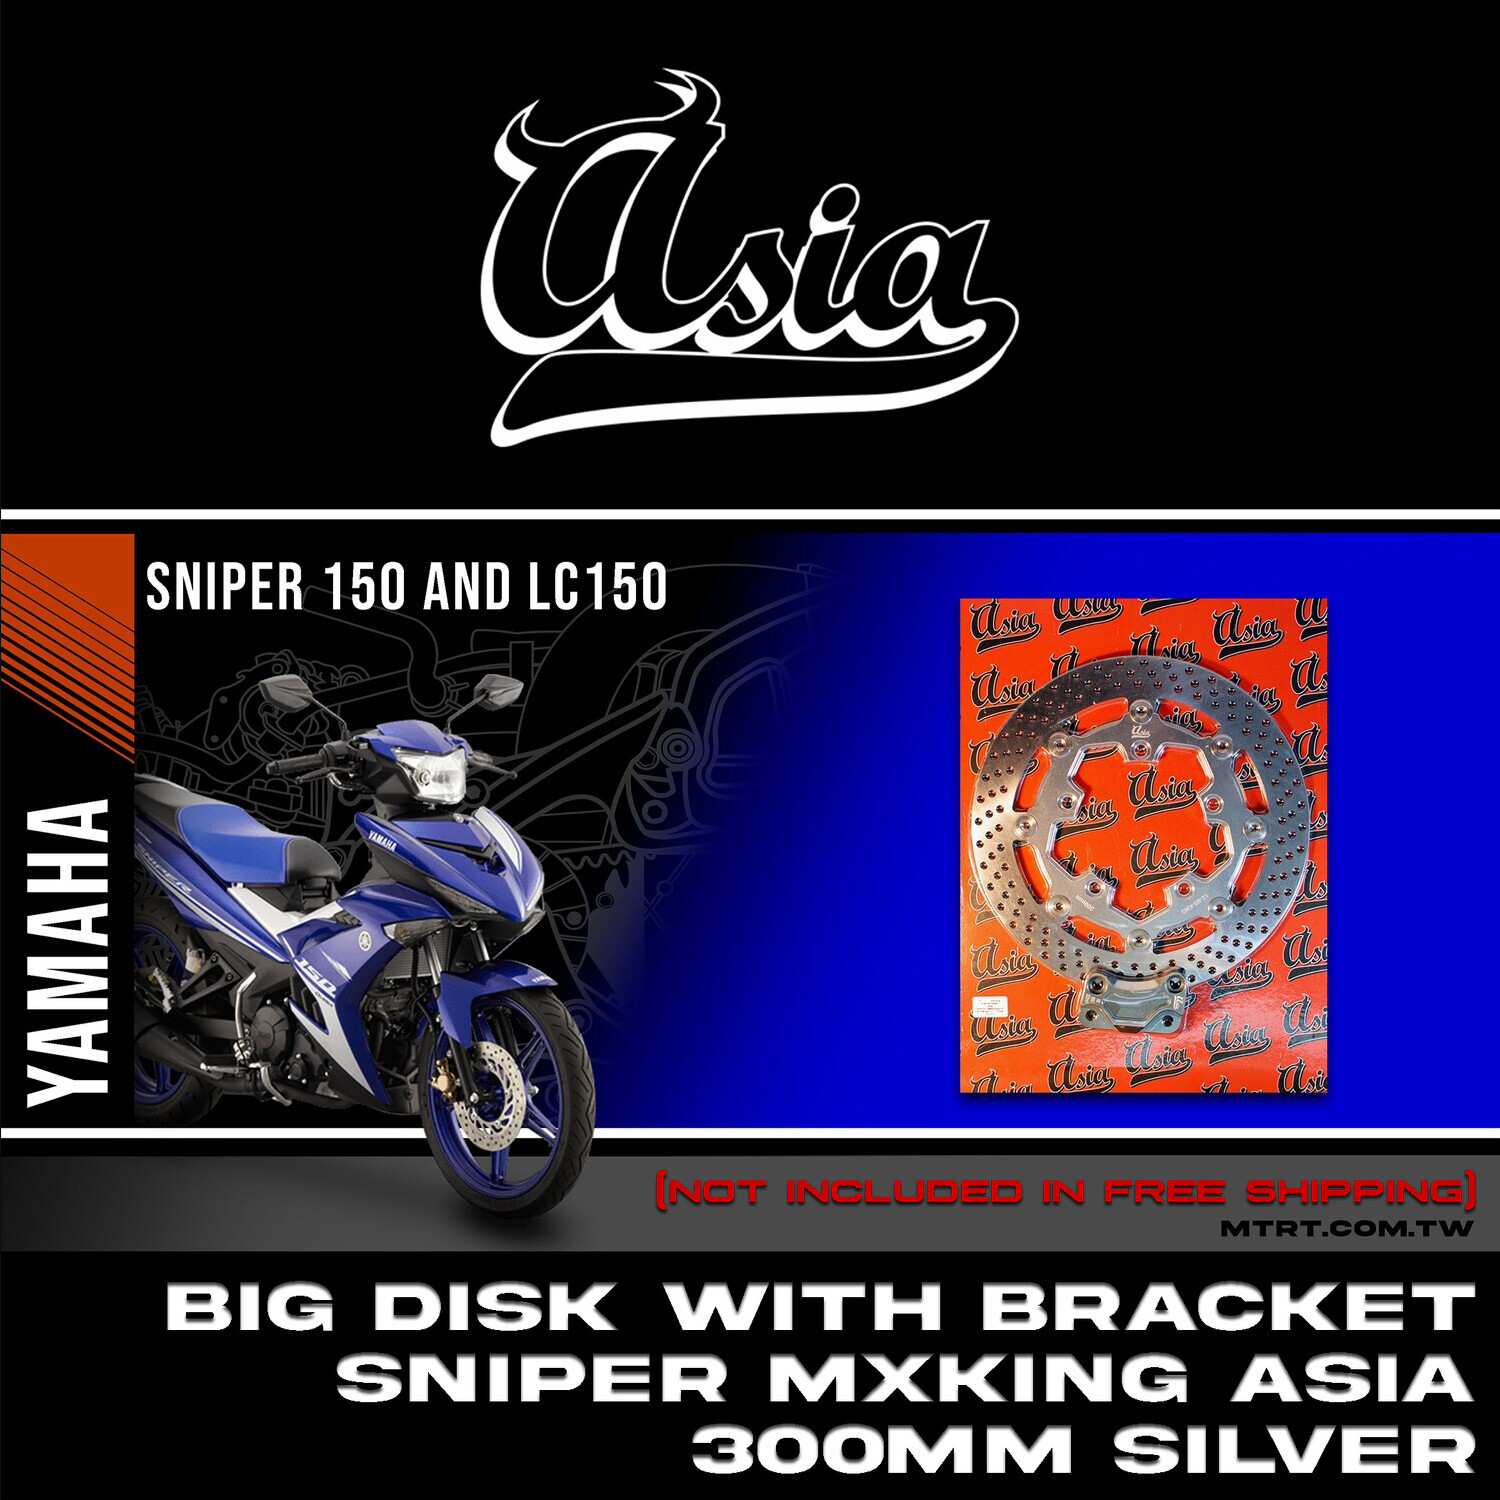 BIG DISK SNIPER MXKing SILVER 300MM with bracket  ASIA